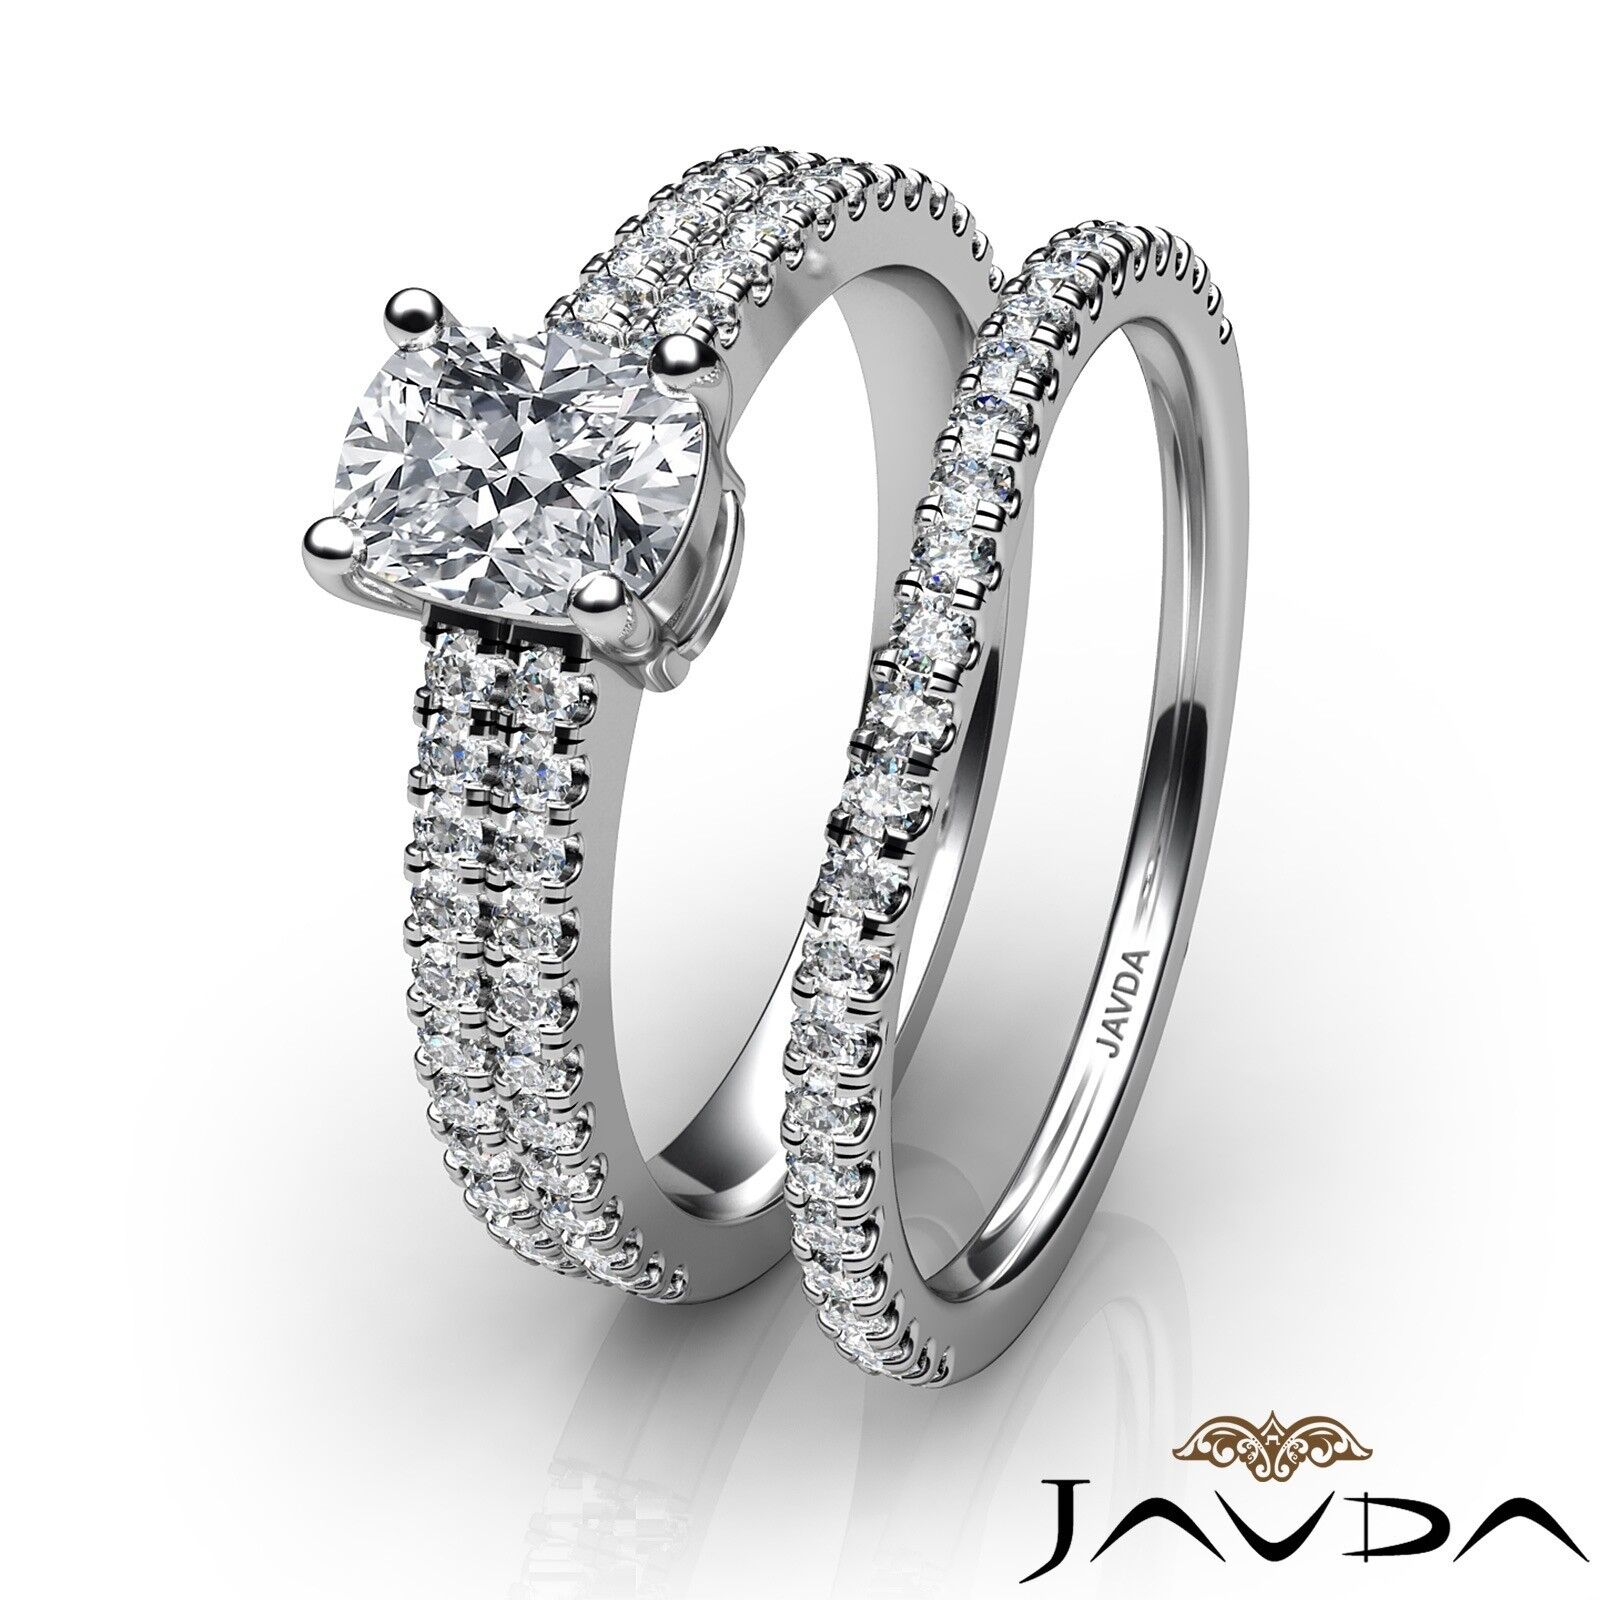 1.54ctw Bridal Scalloped Pave Cushion Diamond Engagement Ring GIA G-SI1 W Gold 3